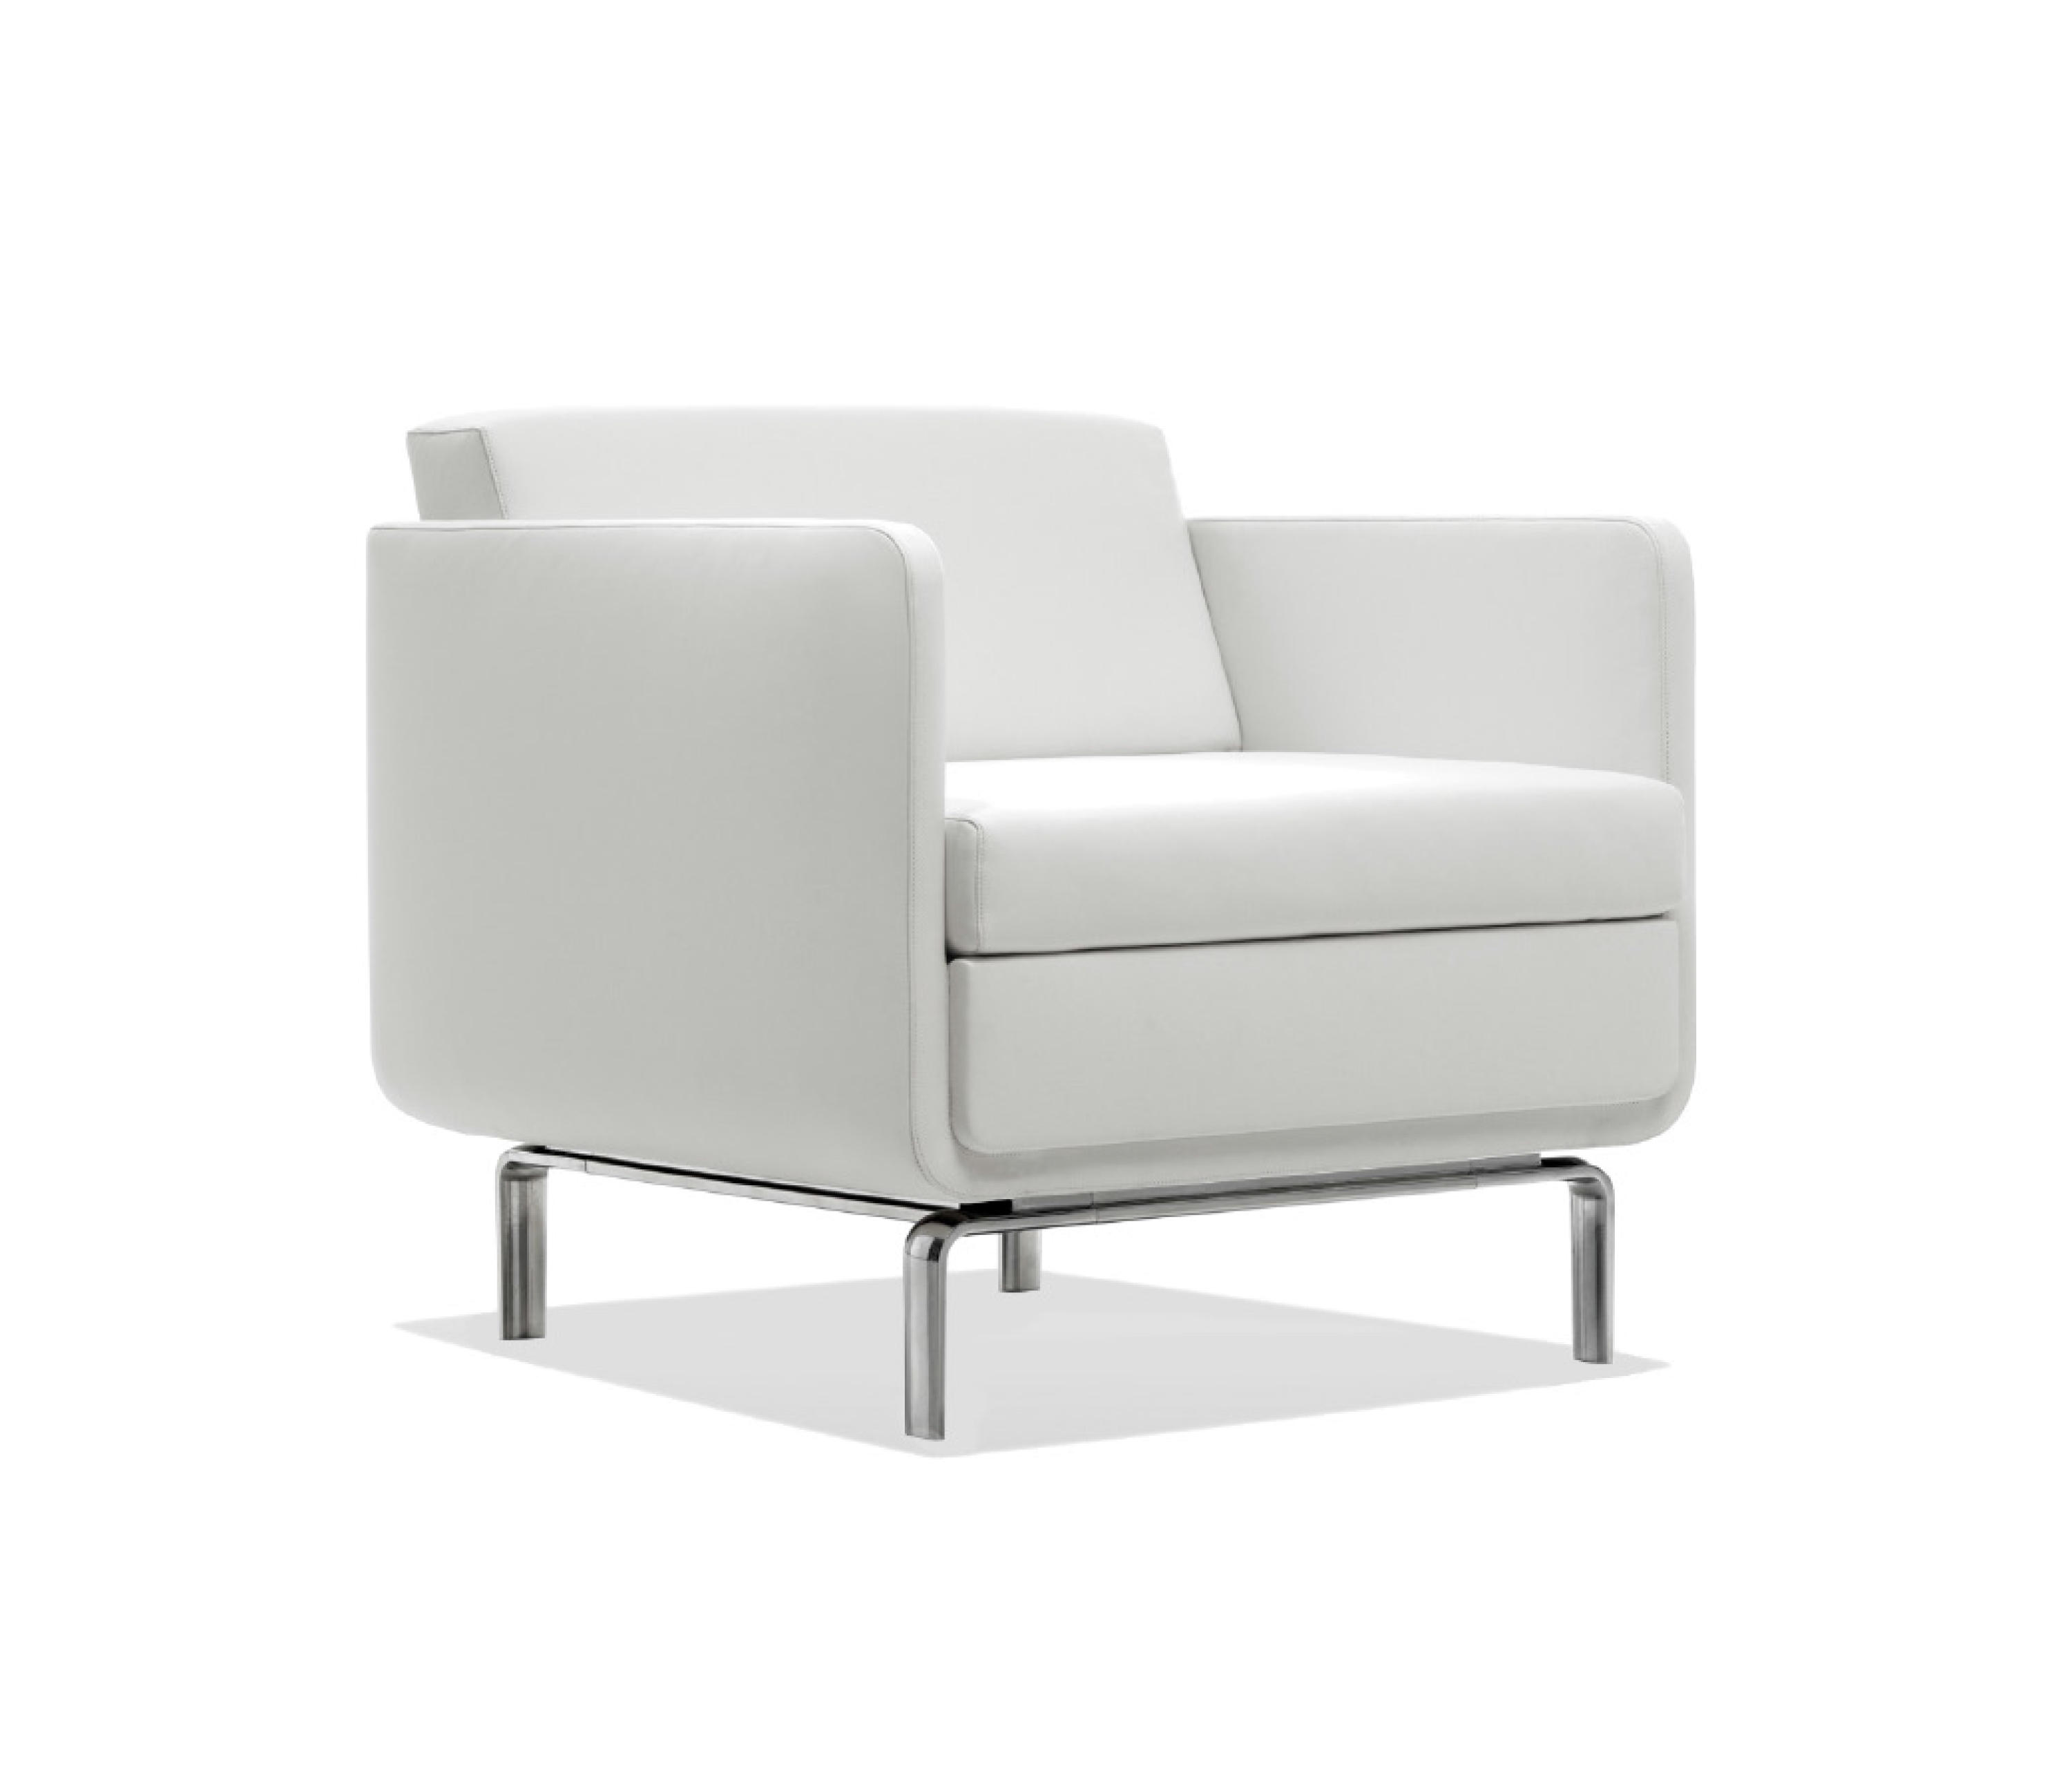 Gaia Lounge Lounge Chairs From Bernhardt Design Architonic